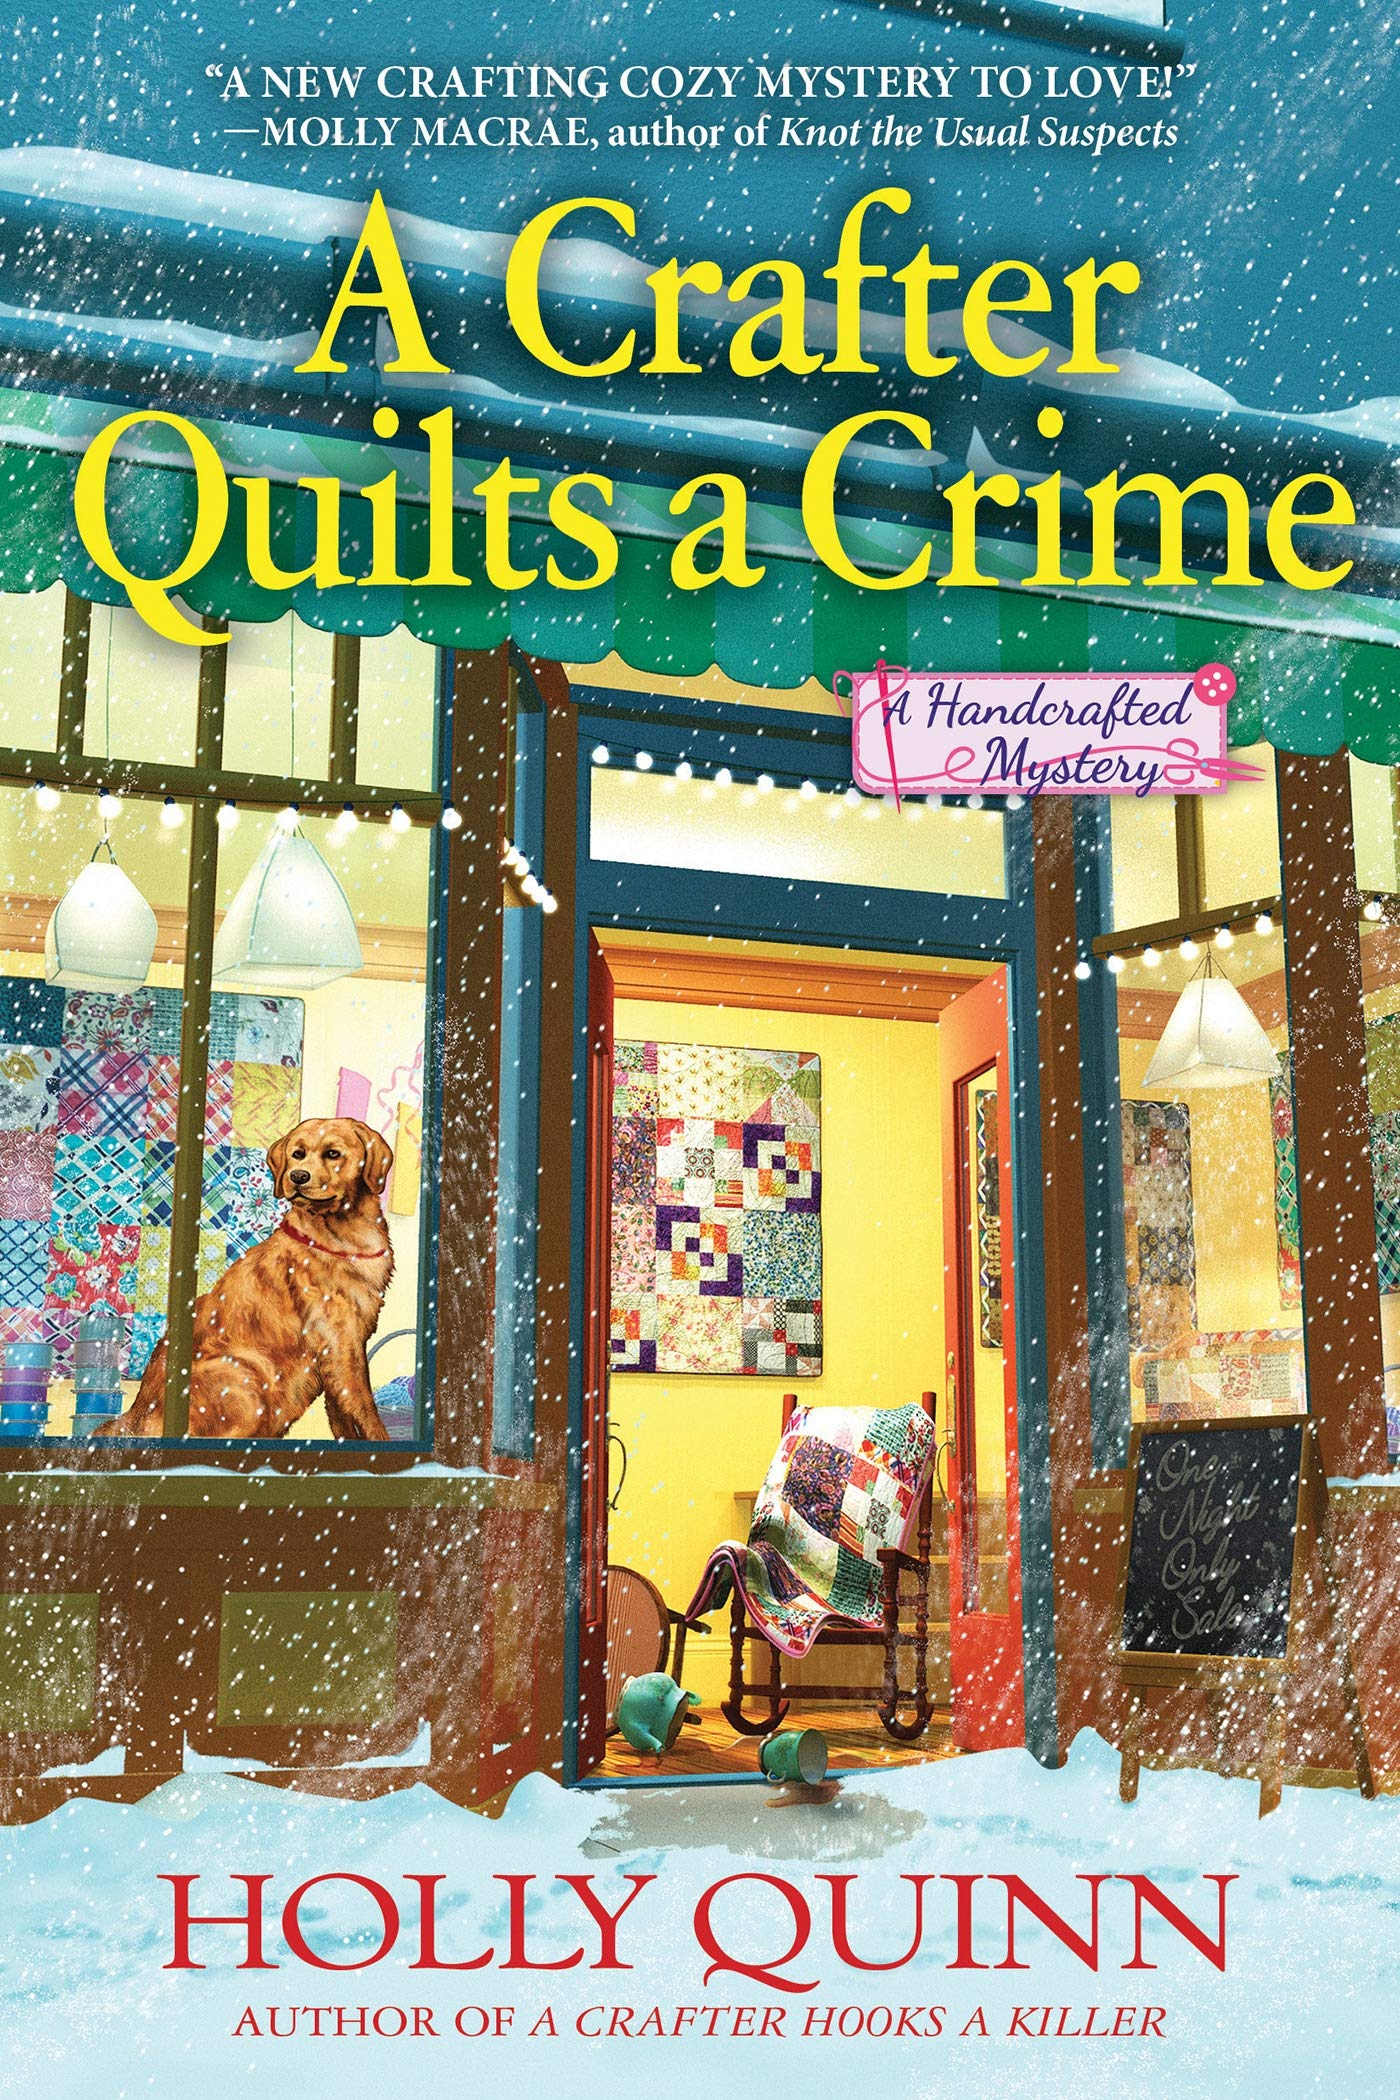 A Crafter Quilts a Crime by Holly Quinn {A Book Review}